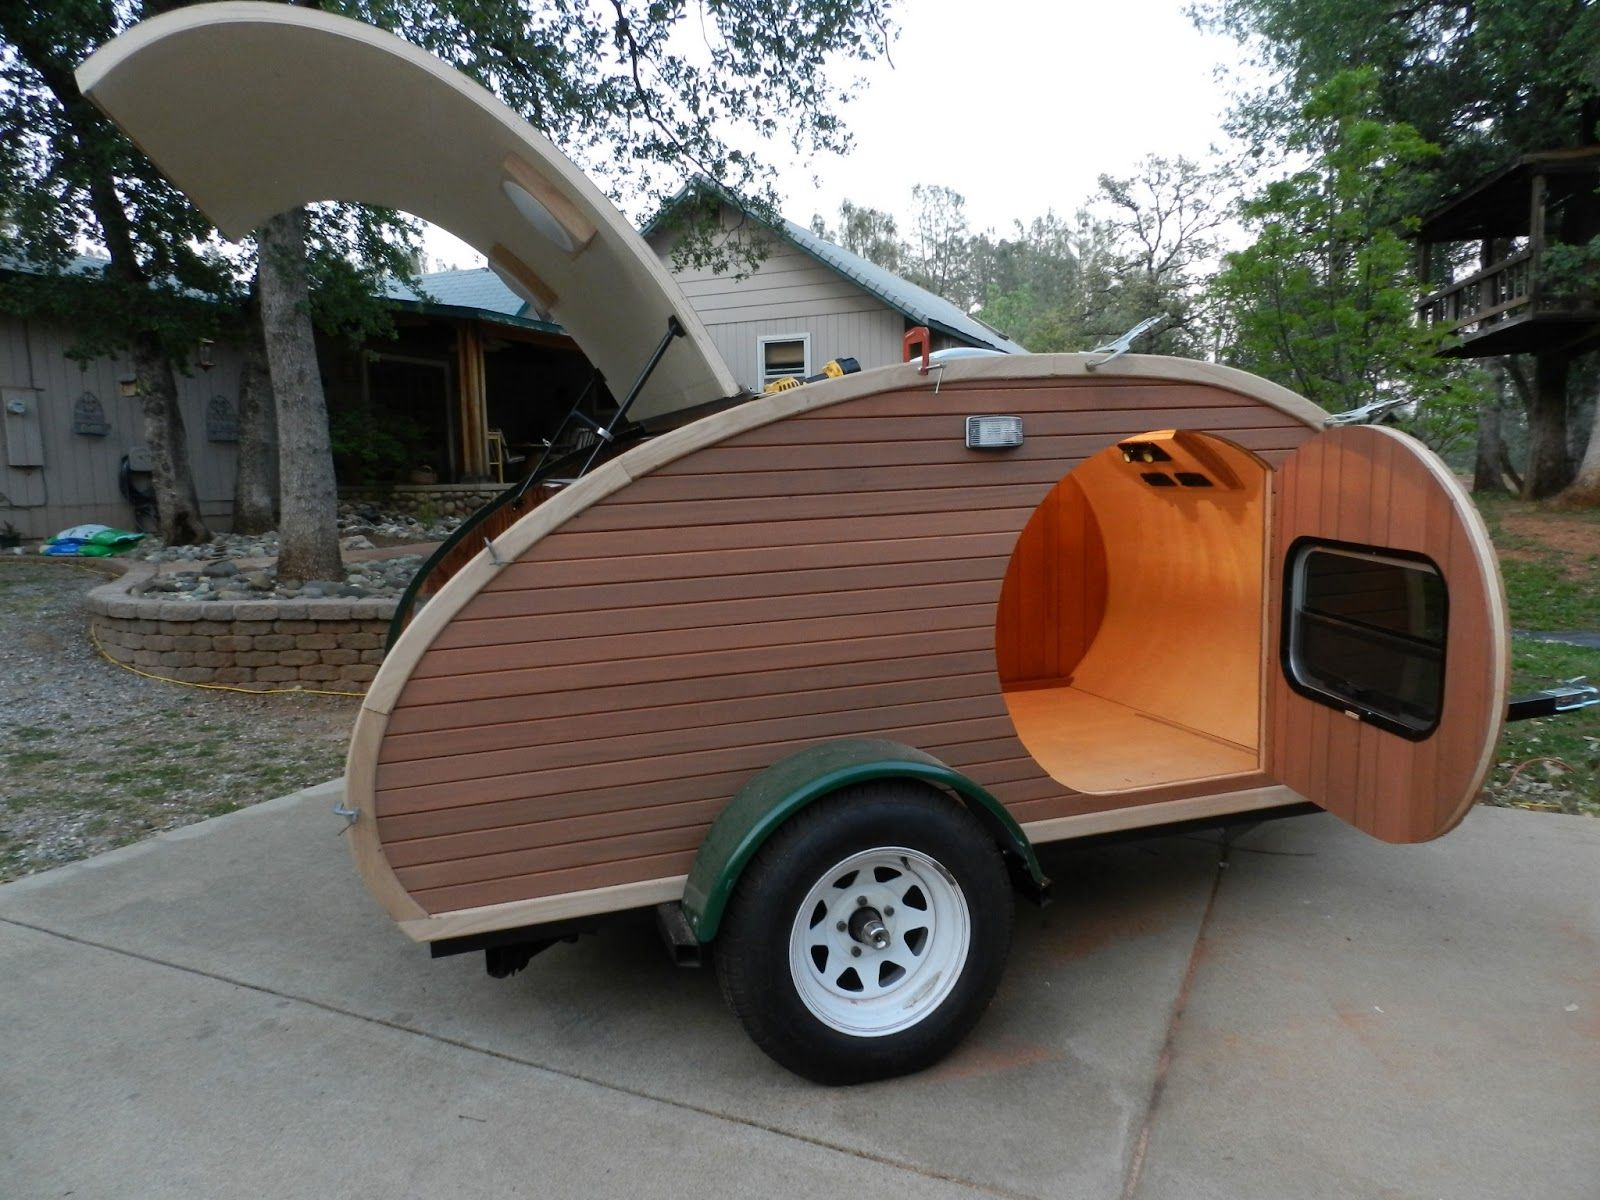 Ed's Teardrop Trailer Project | Teardrop Trailer | Teardrop camper